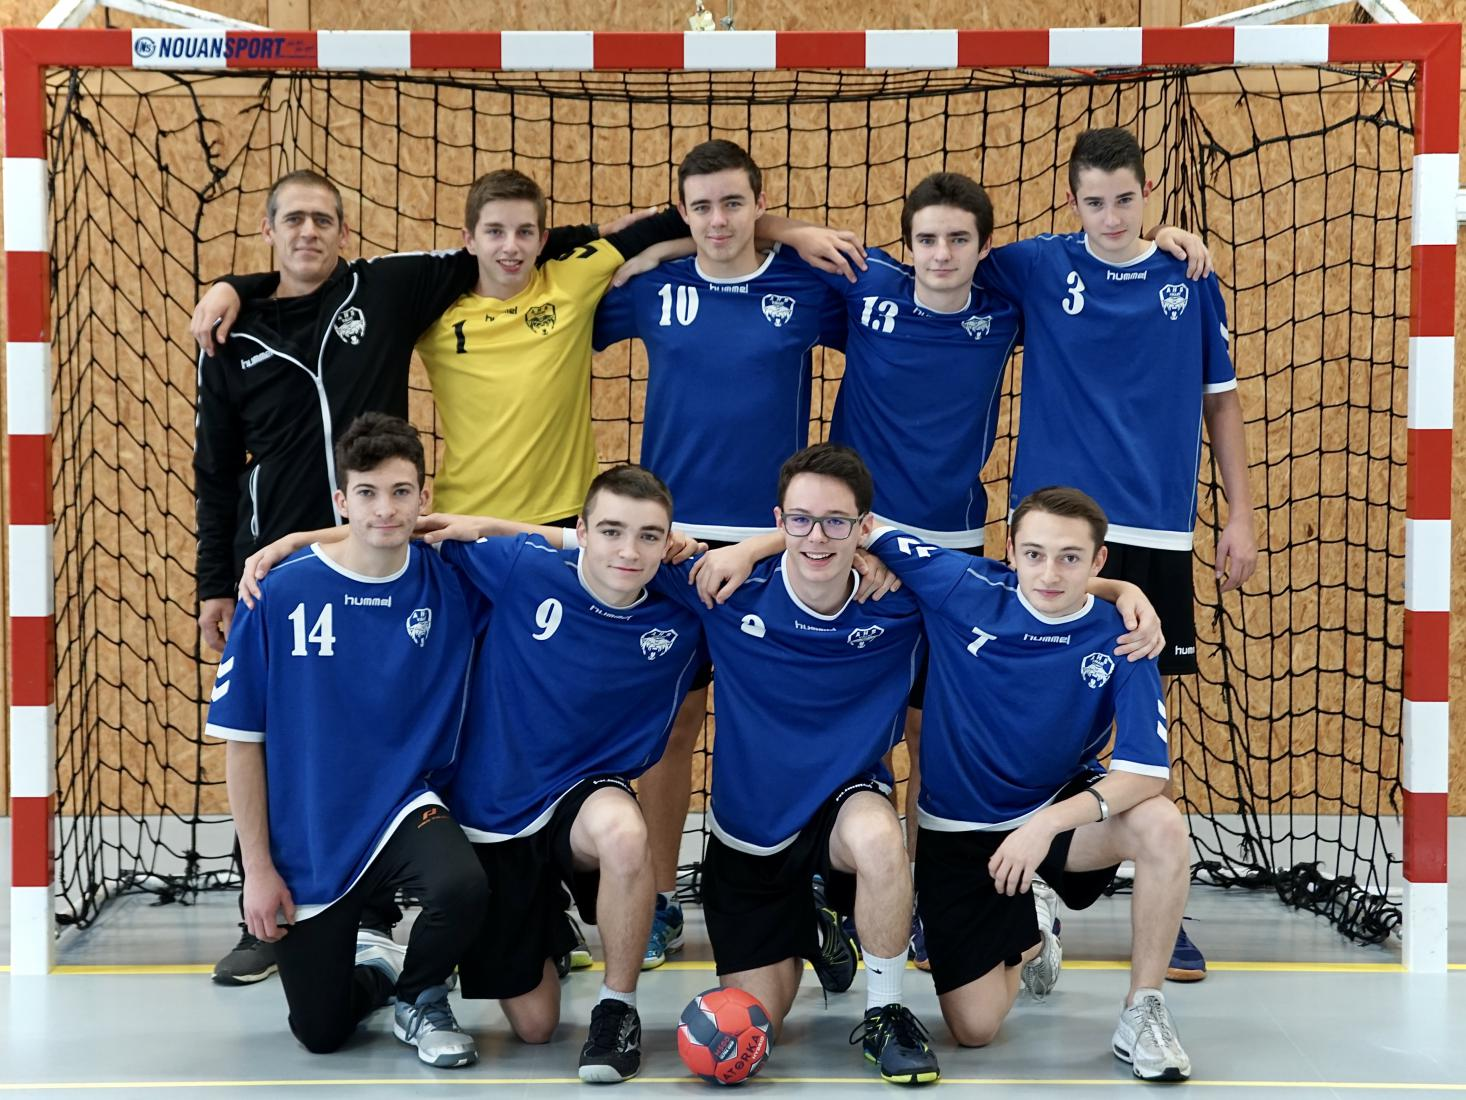 VALLET -19 M - Association Handball Vallet